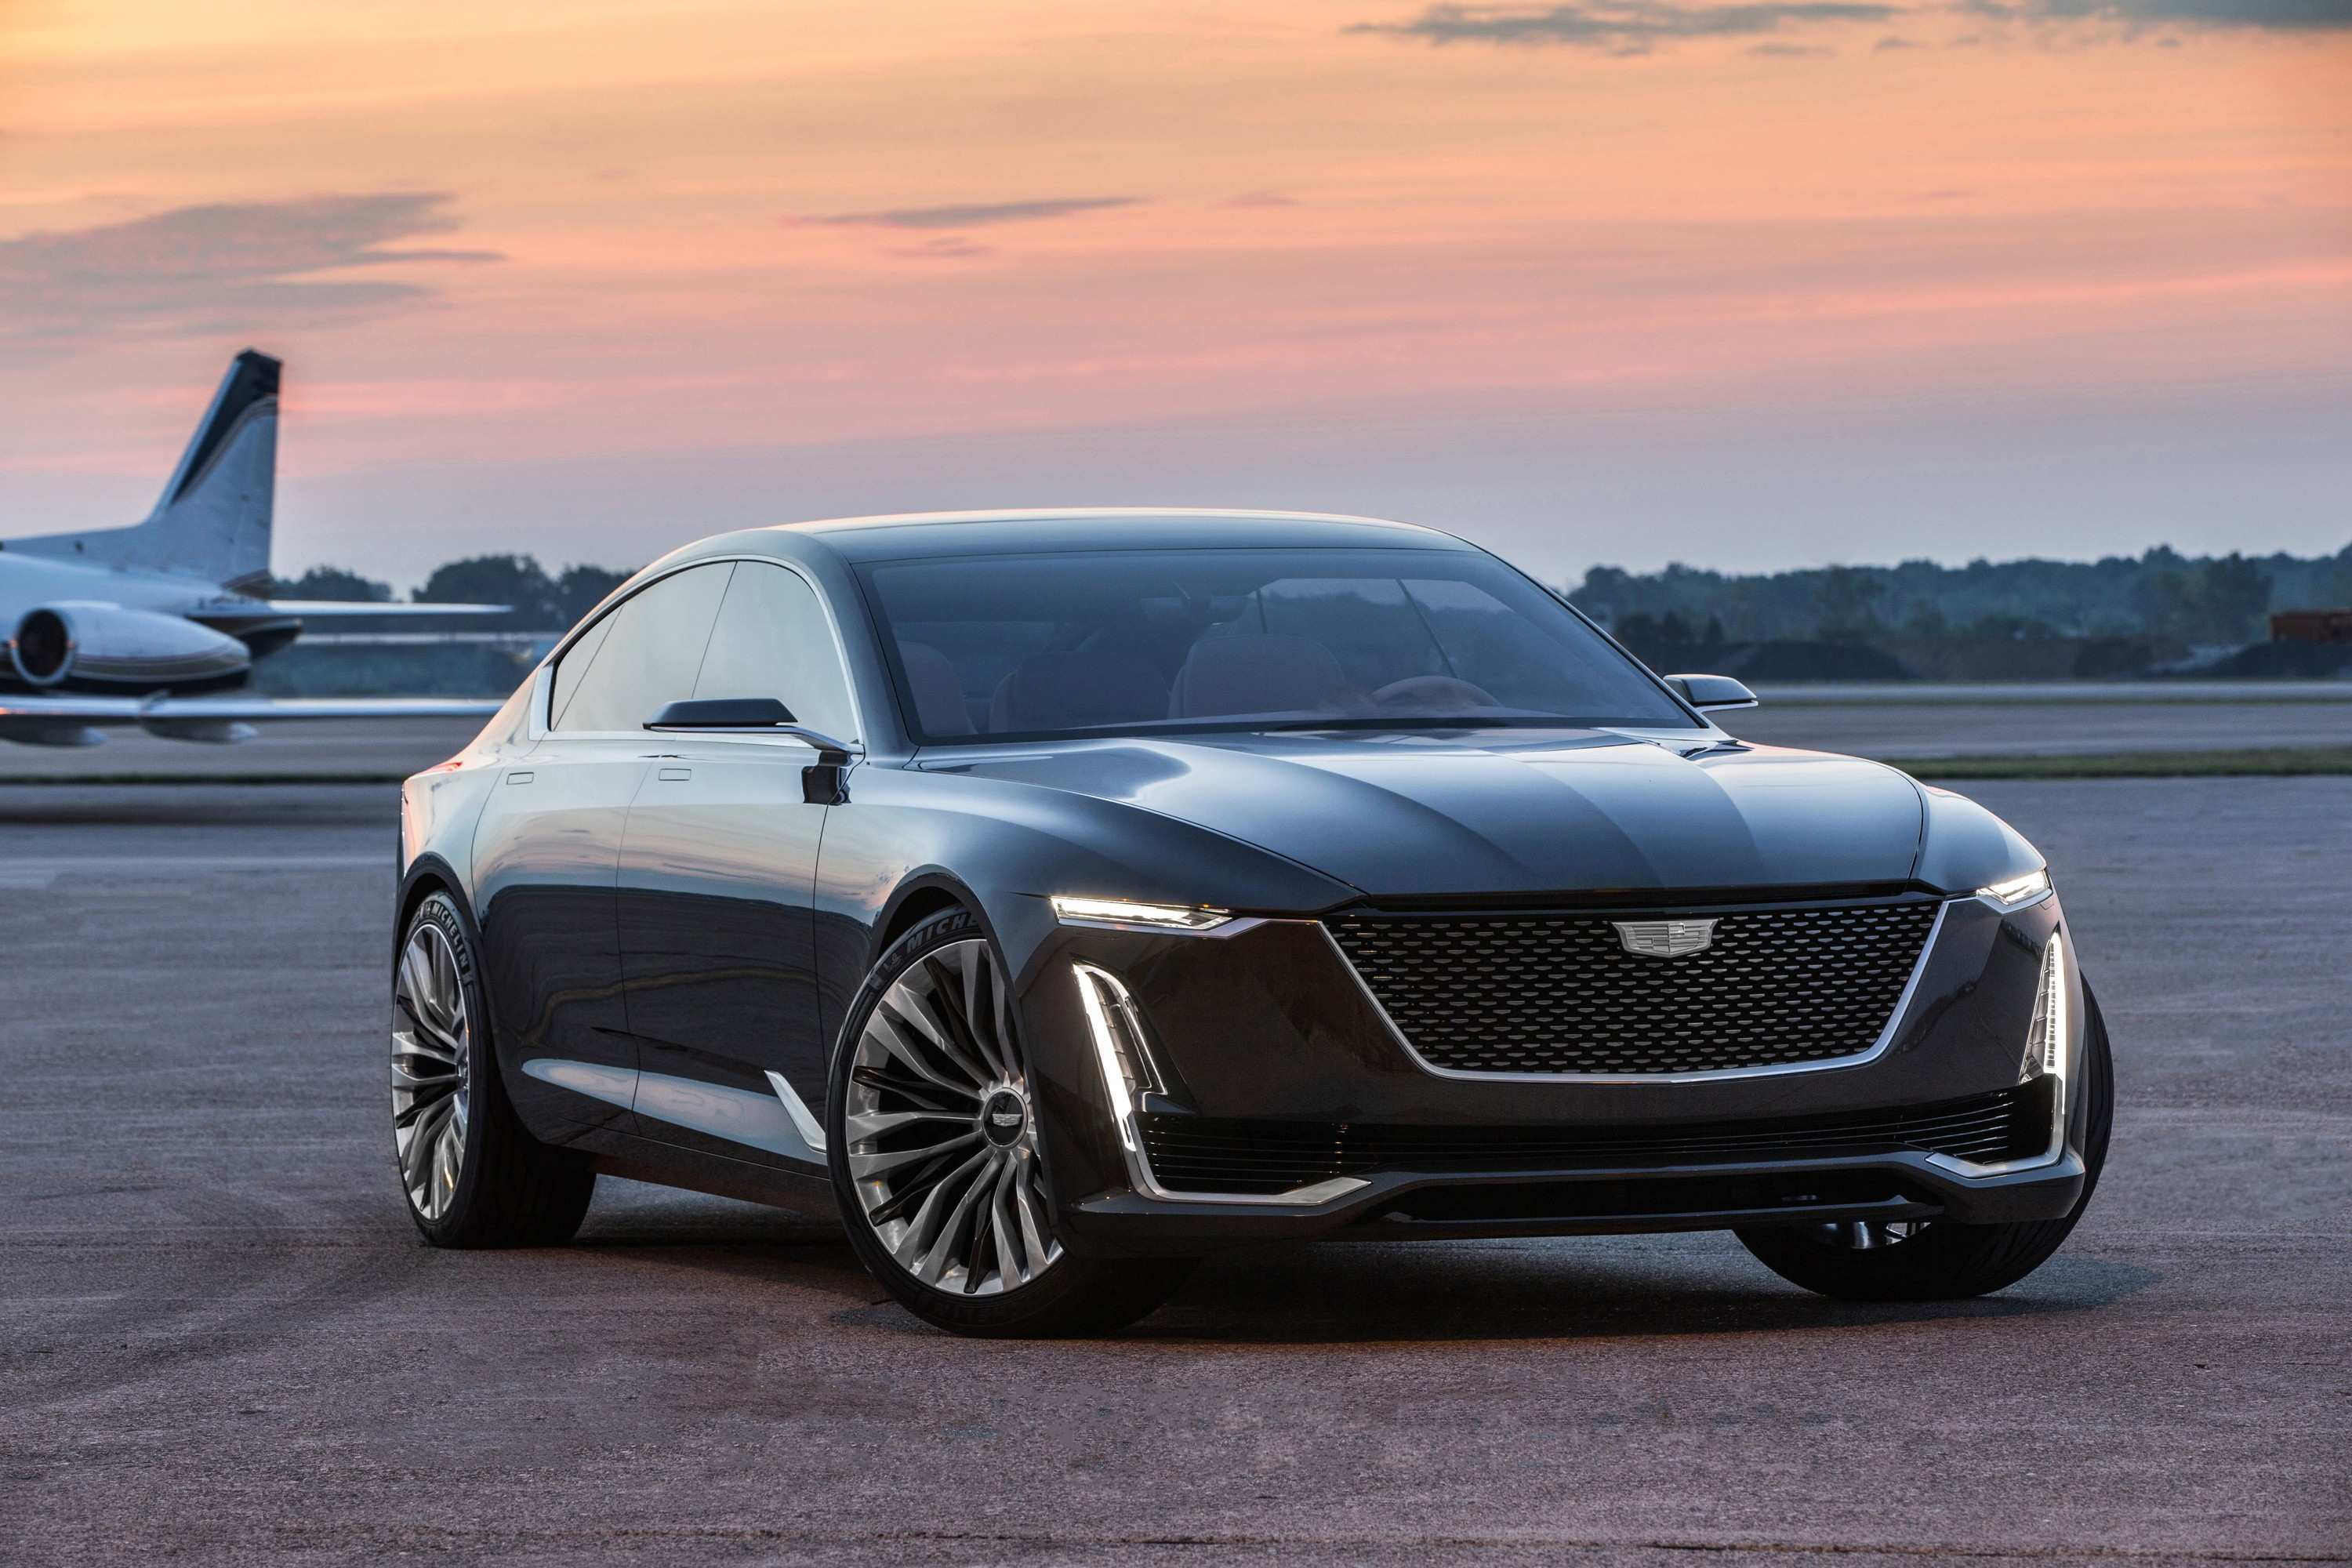 47 All New 2020 Candillac Xts Rumors